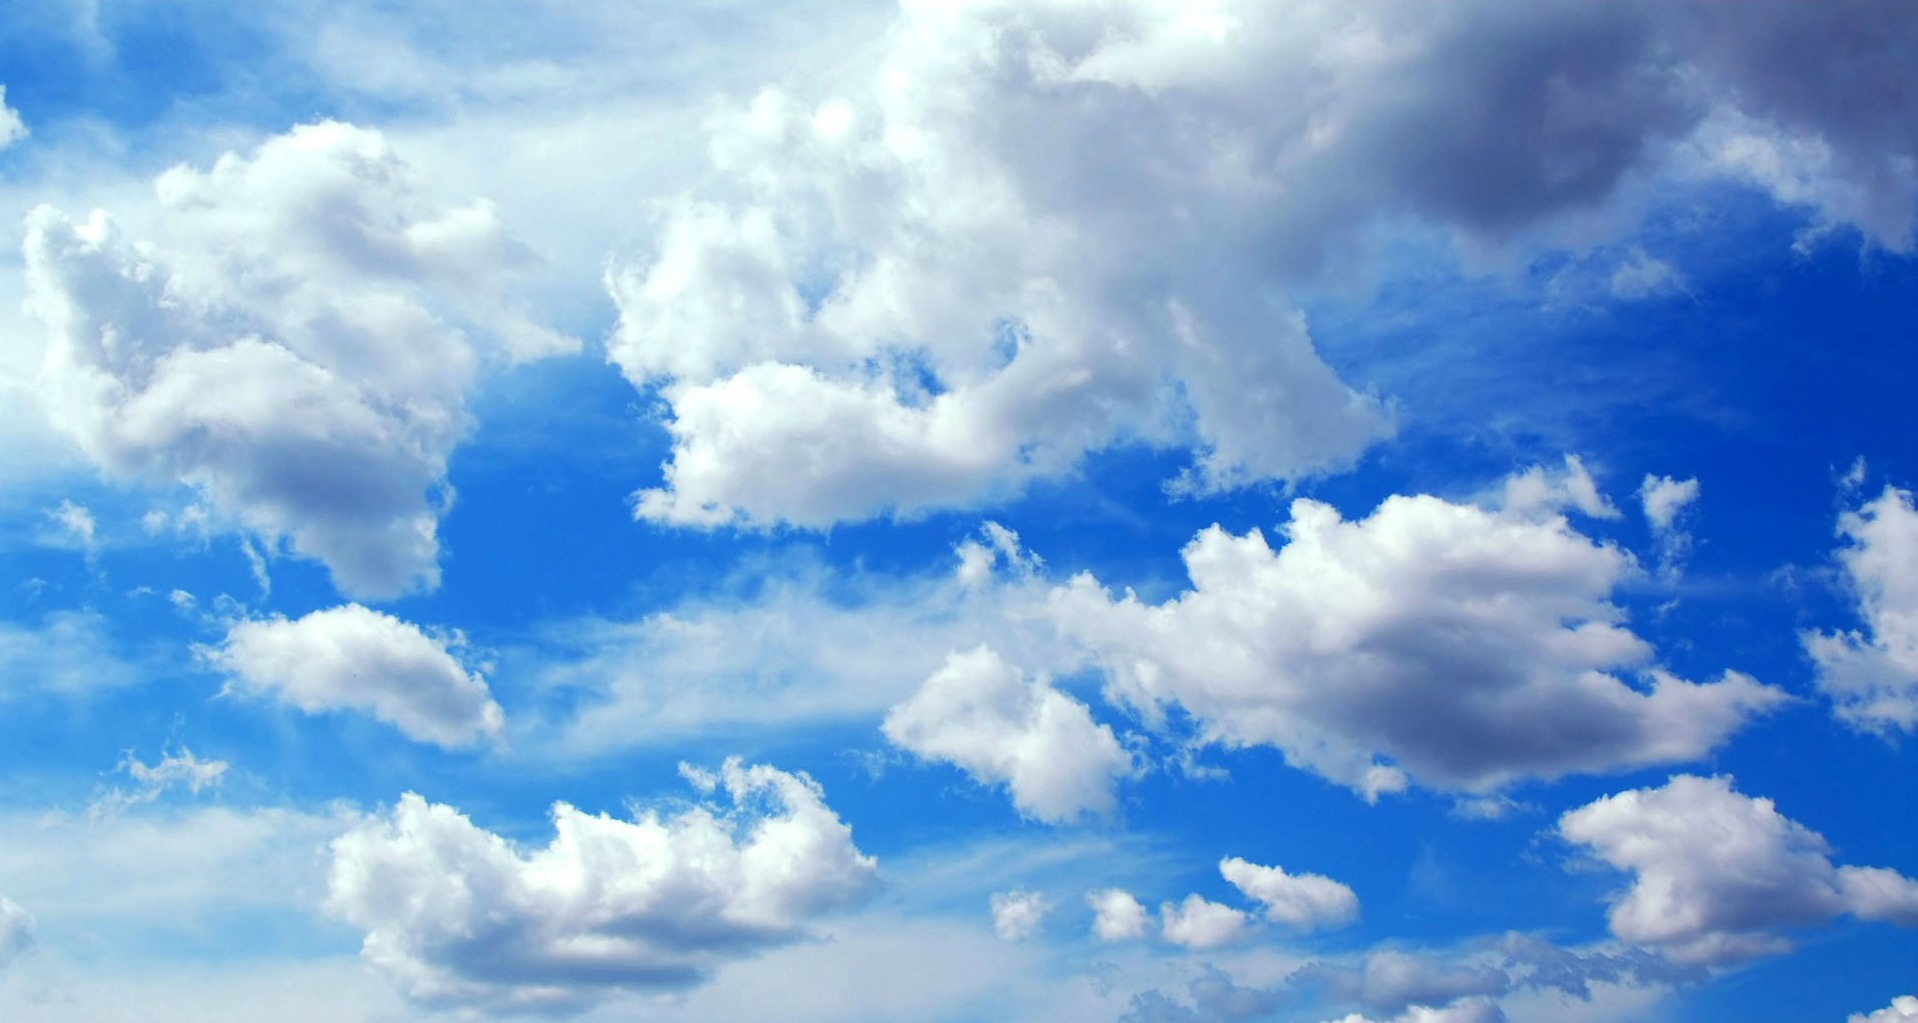 clouds_texture2882-11